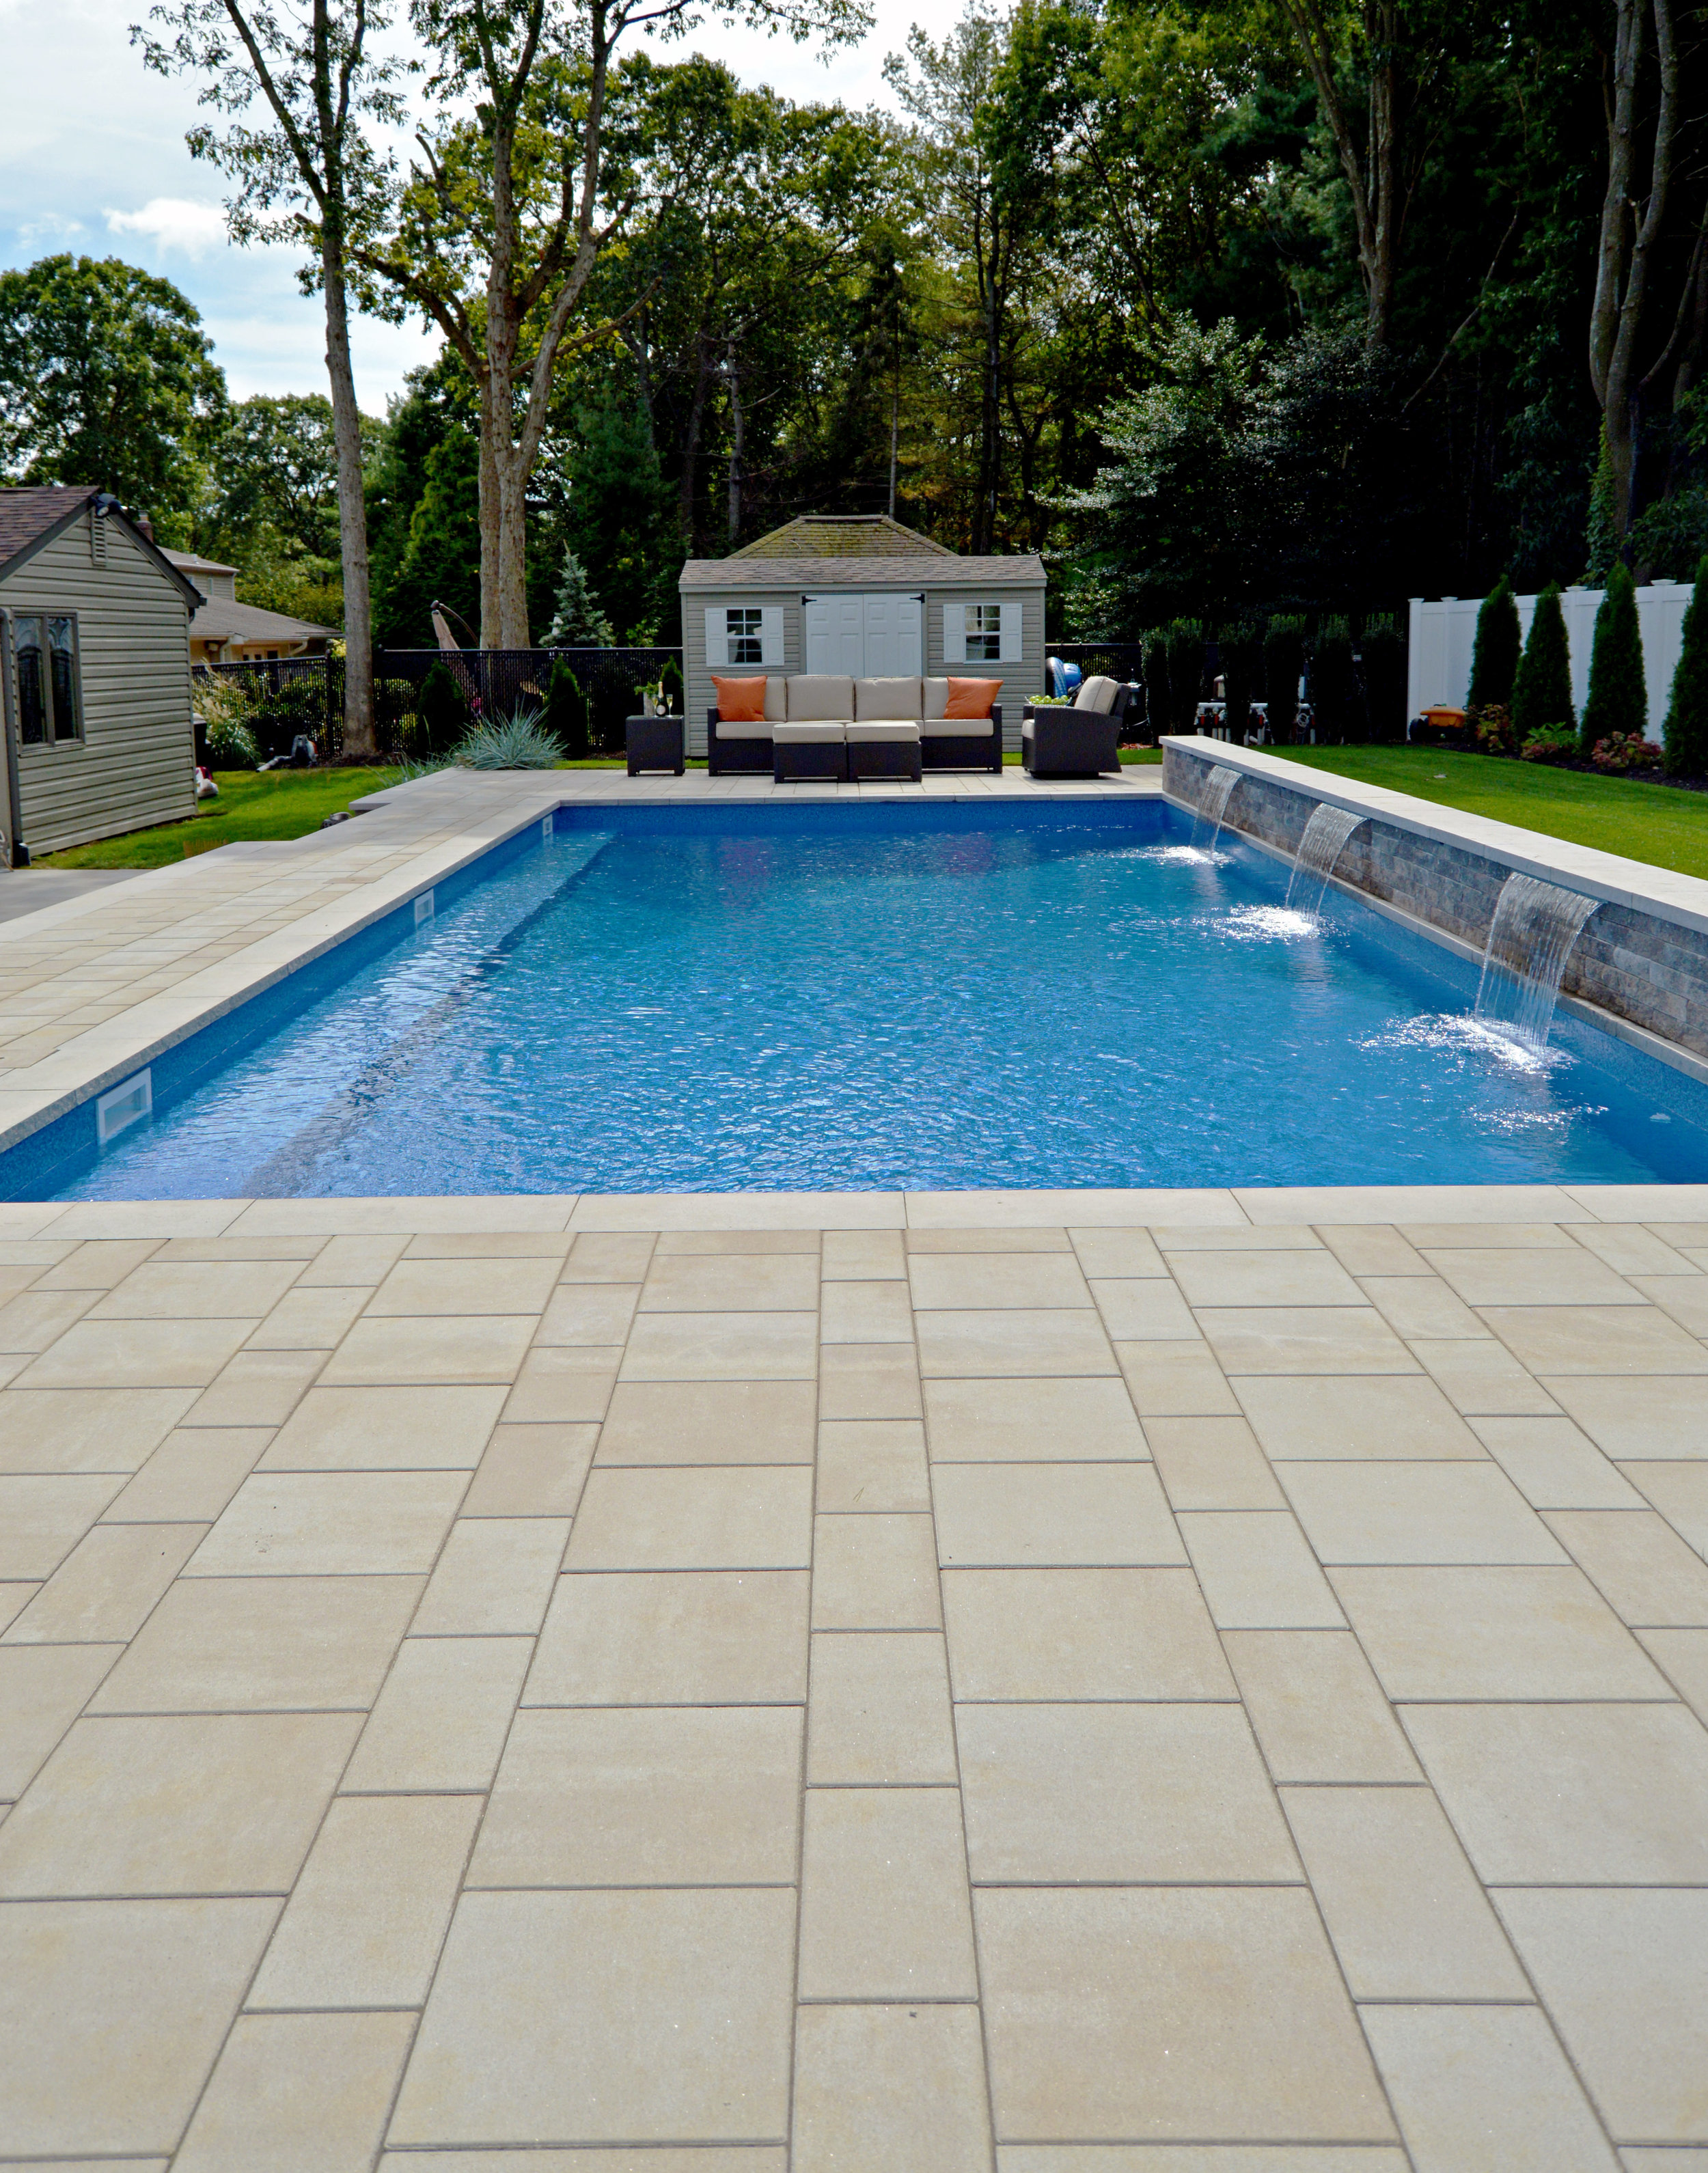 Smithtown, NY swimming pool patio design